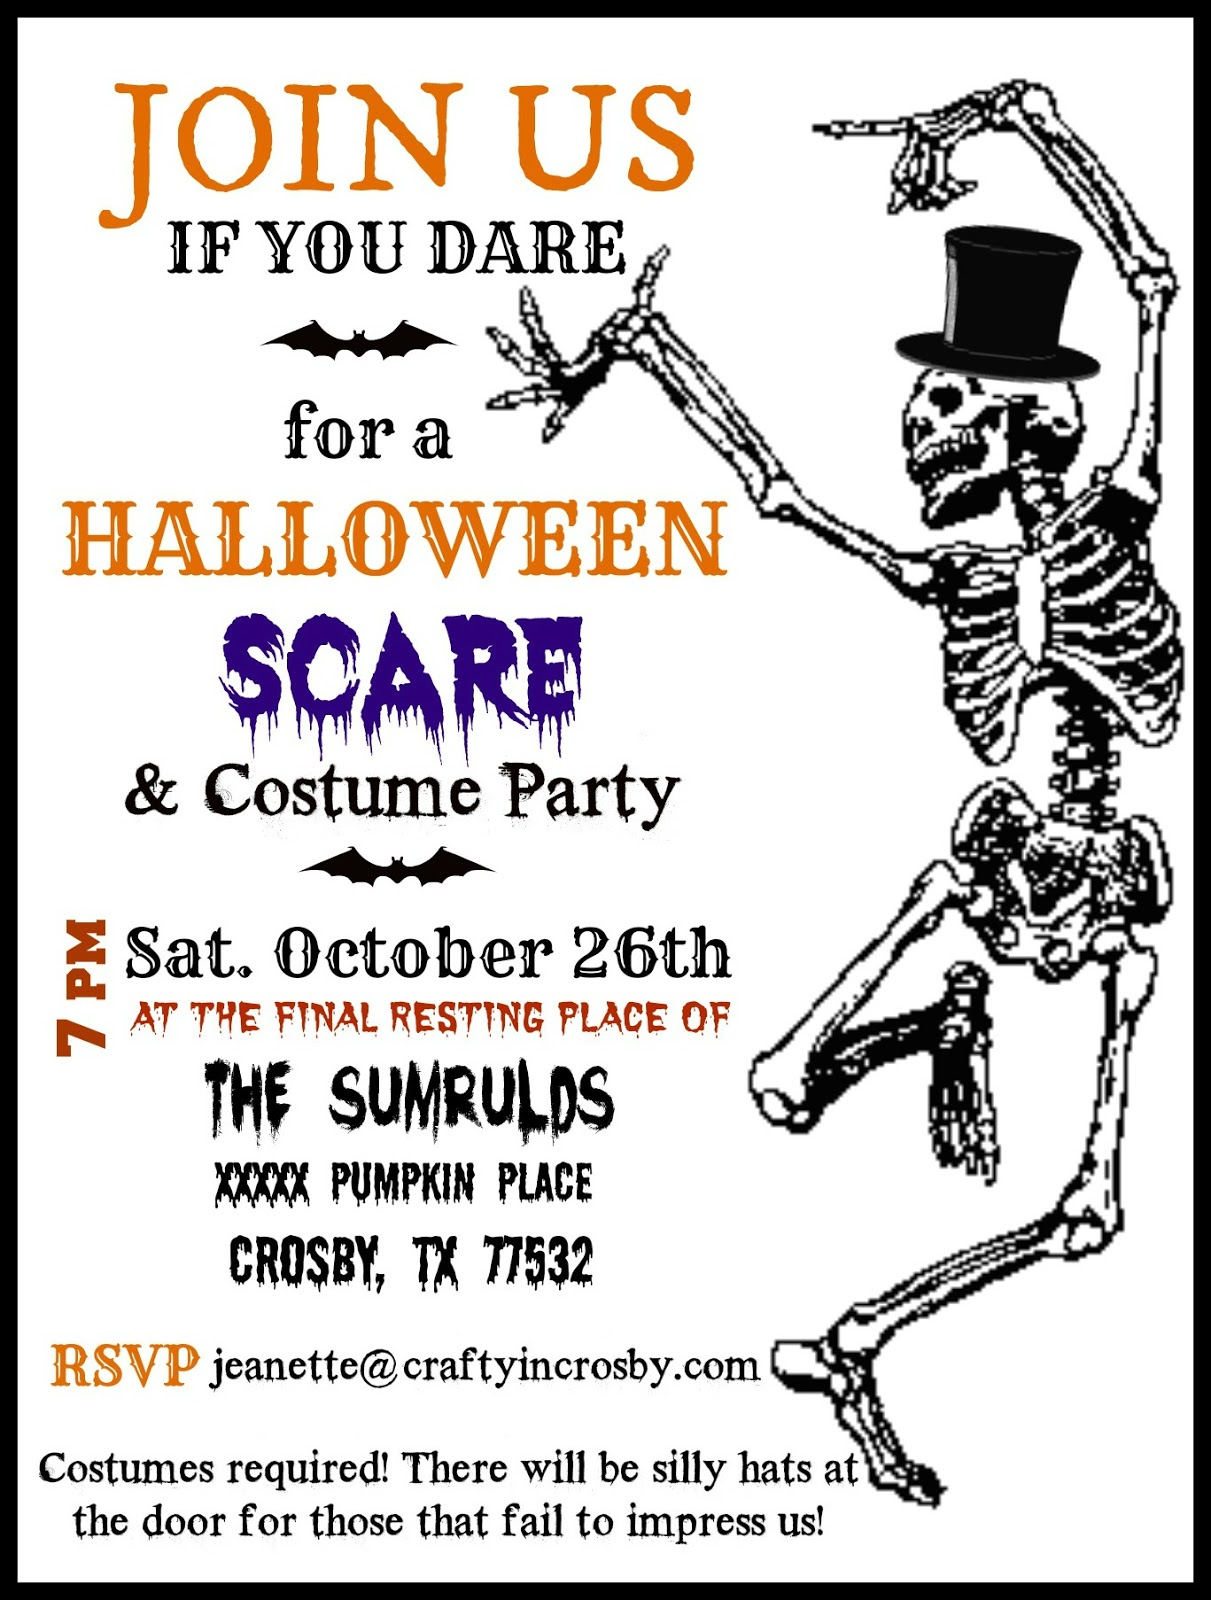 Crafty in Crosby: Halloween Party Invitations with Template